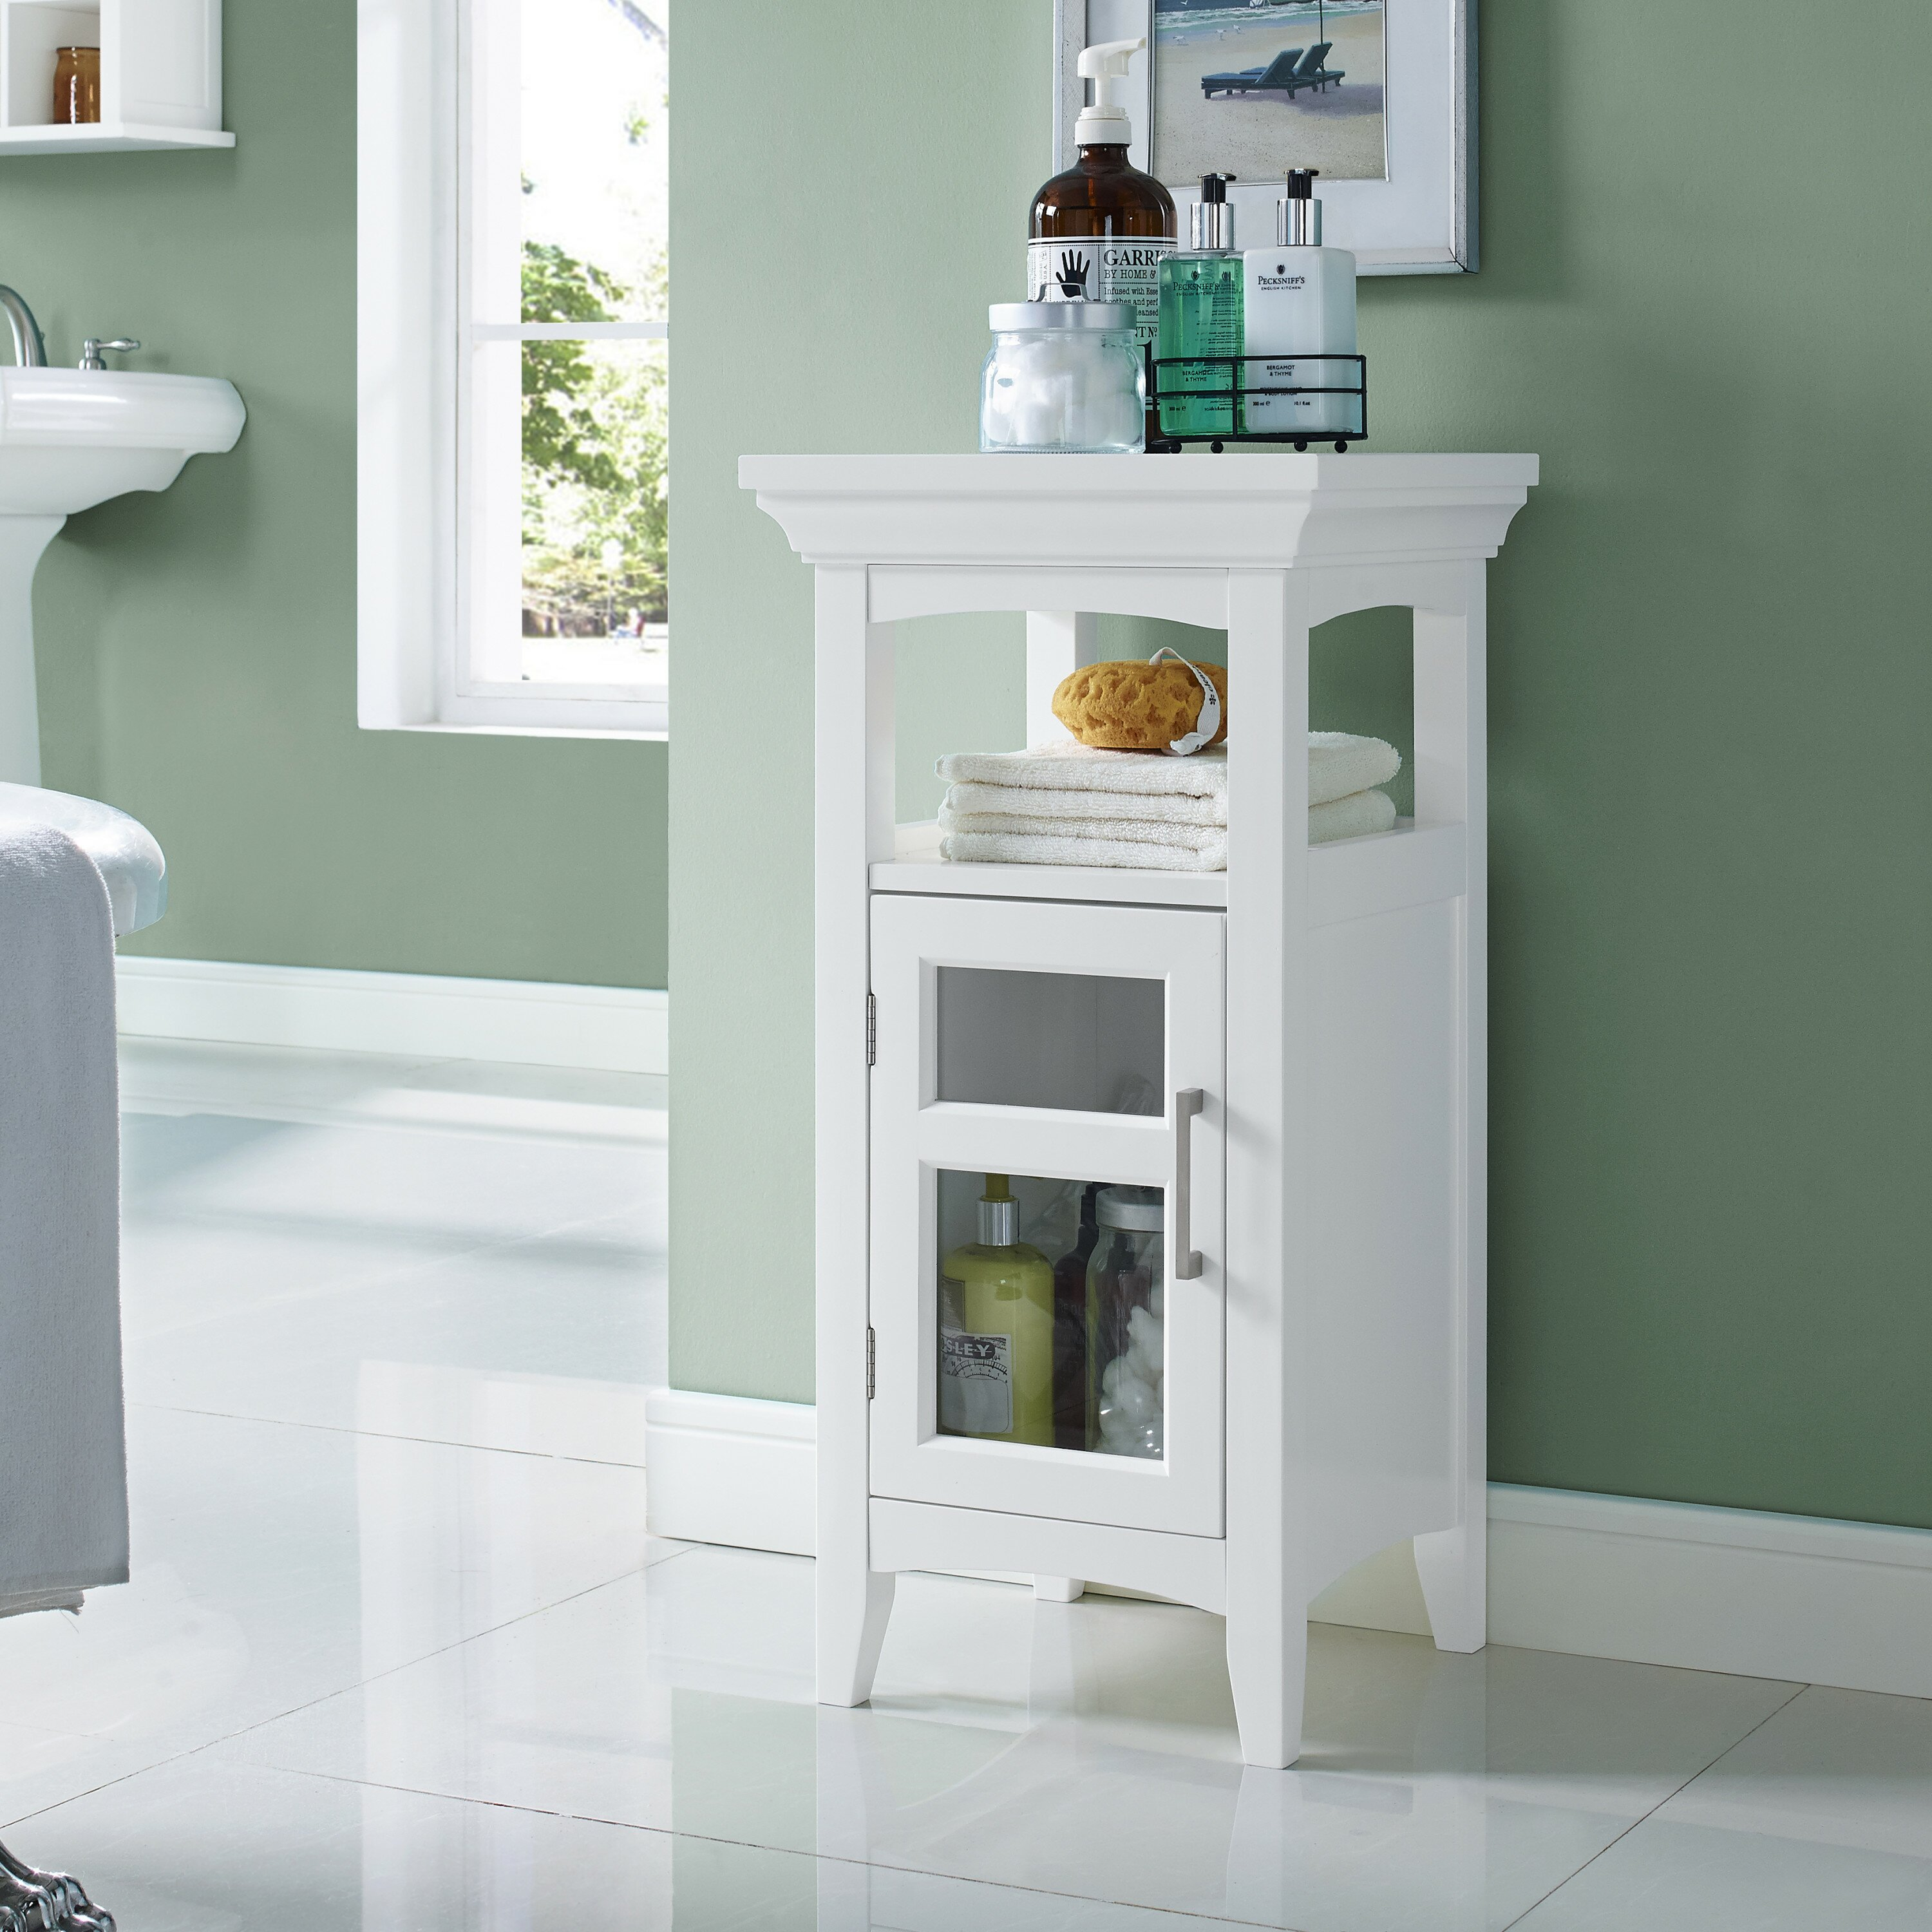 Just Cabinets Aberdeen Bathroom Cabinets Youll Love